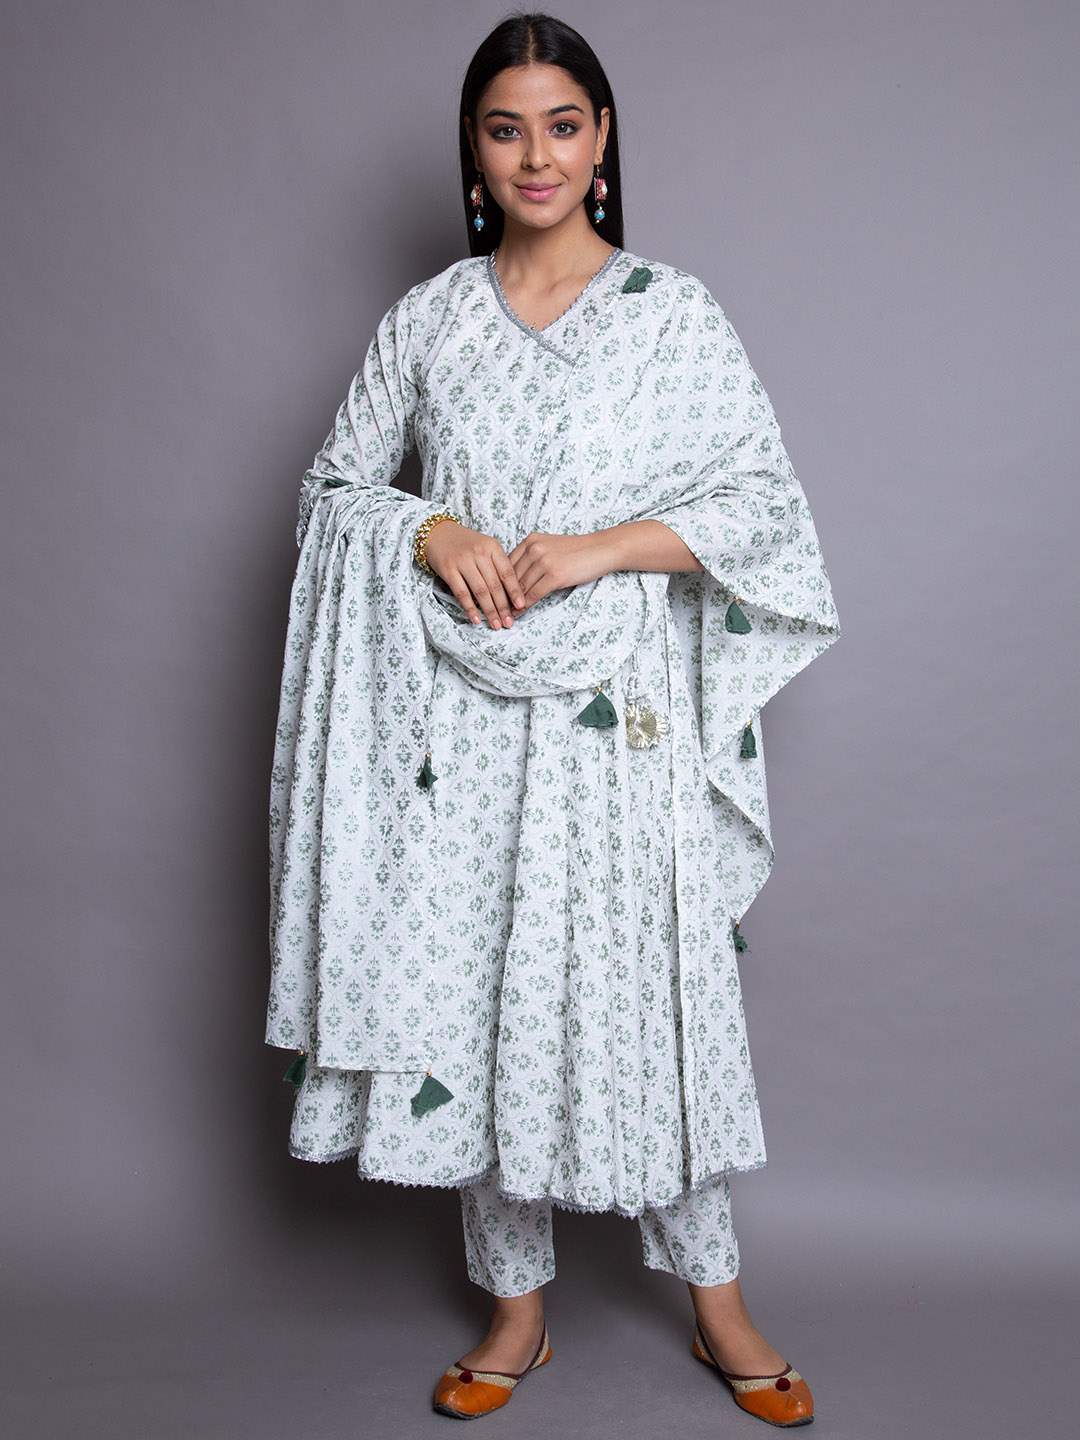 White Frock Suit With Dupatta